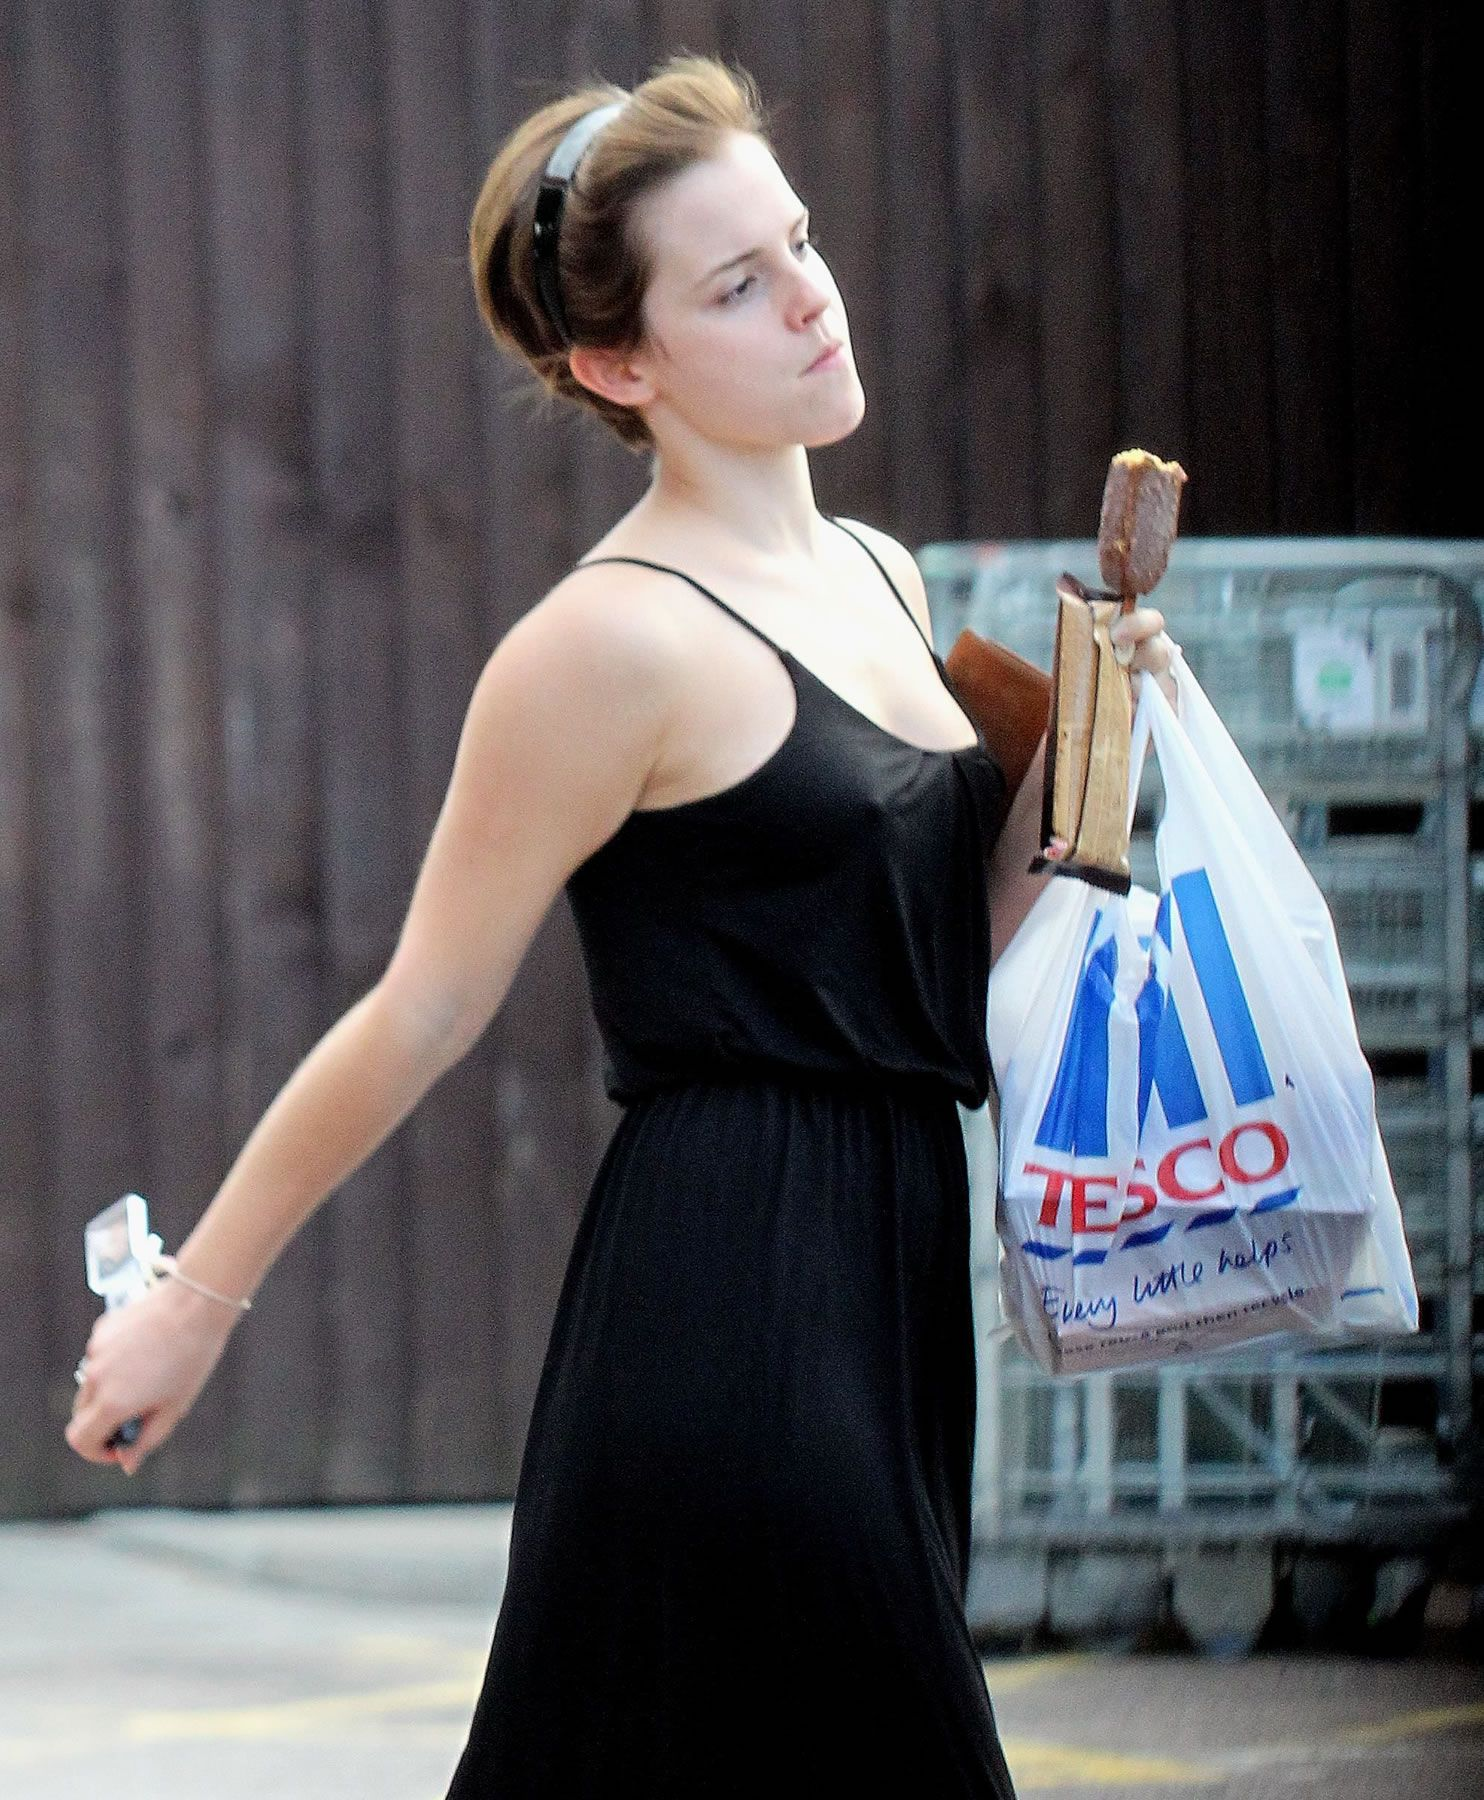 Like emma watson upskirt david letterman stop